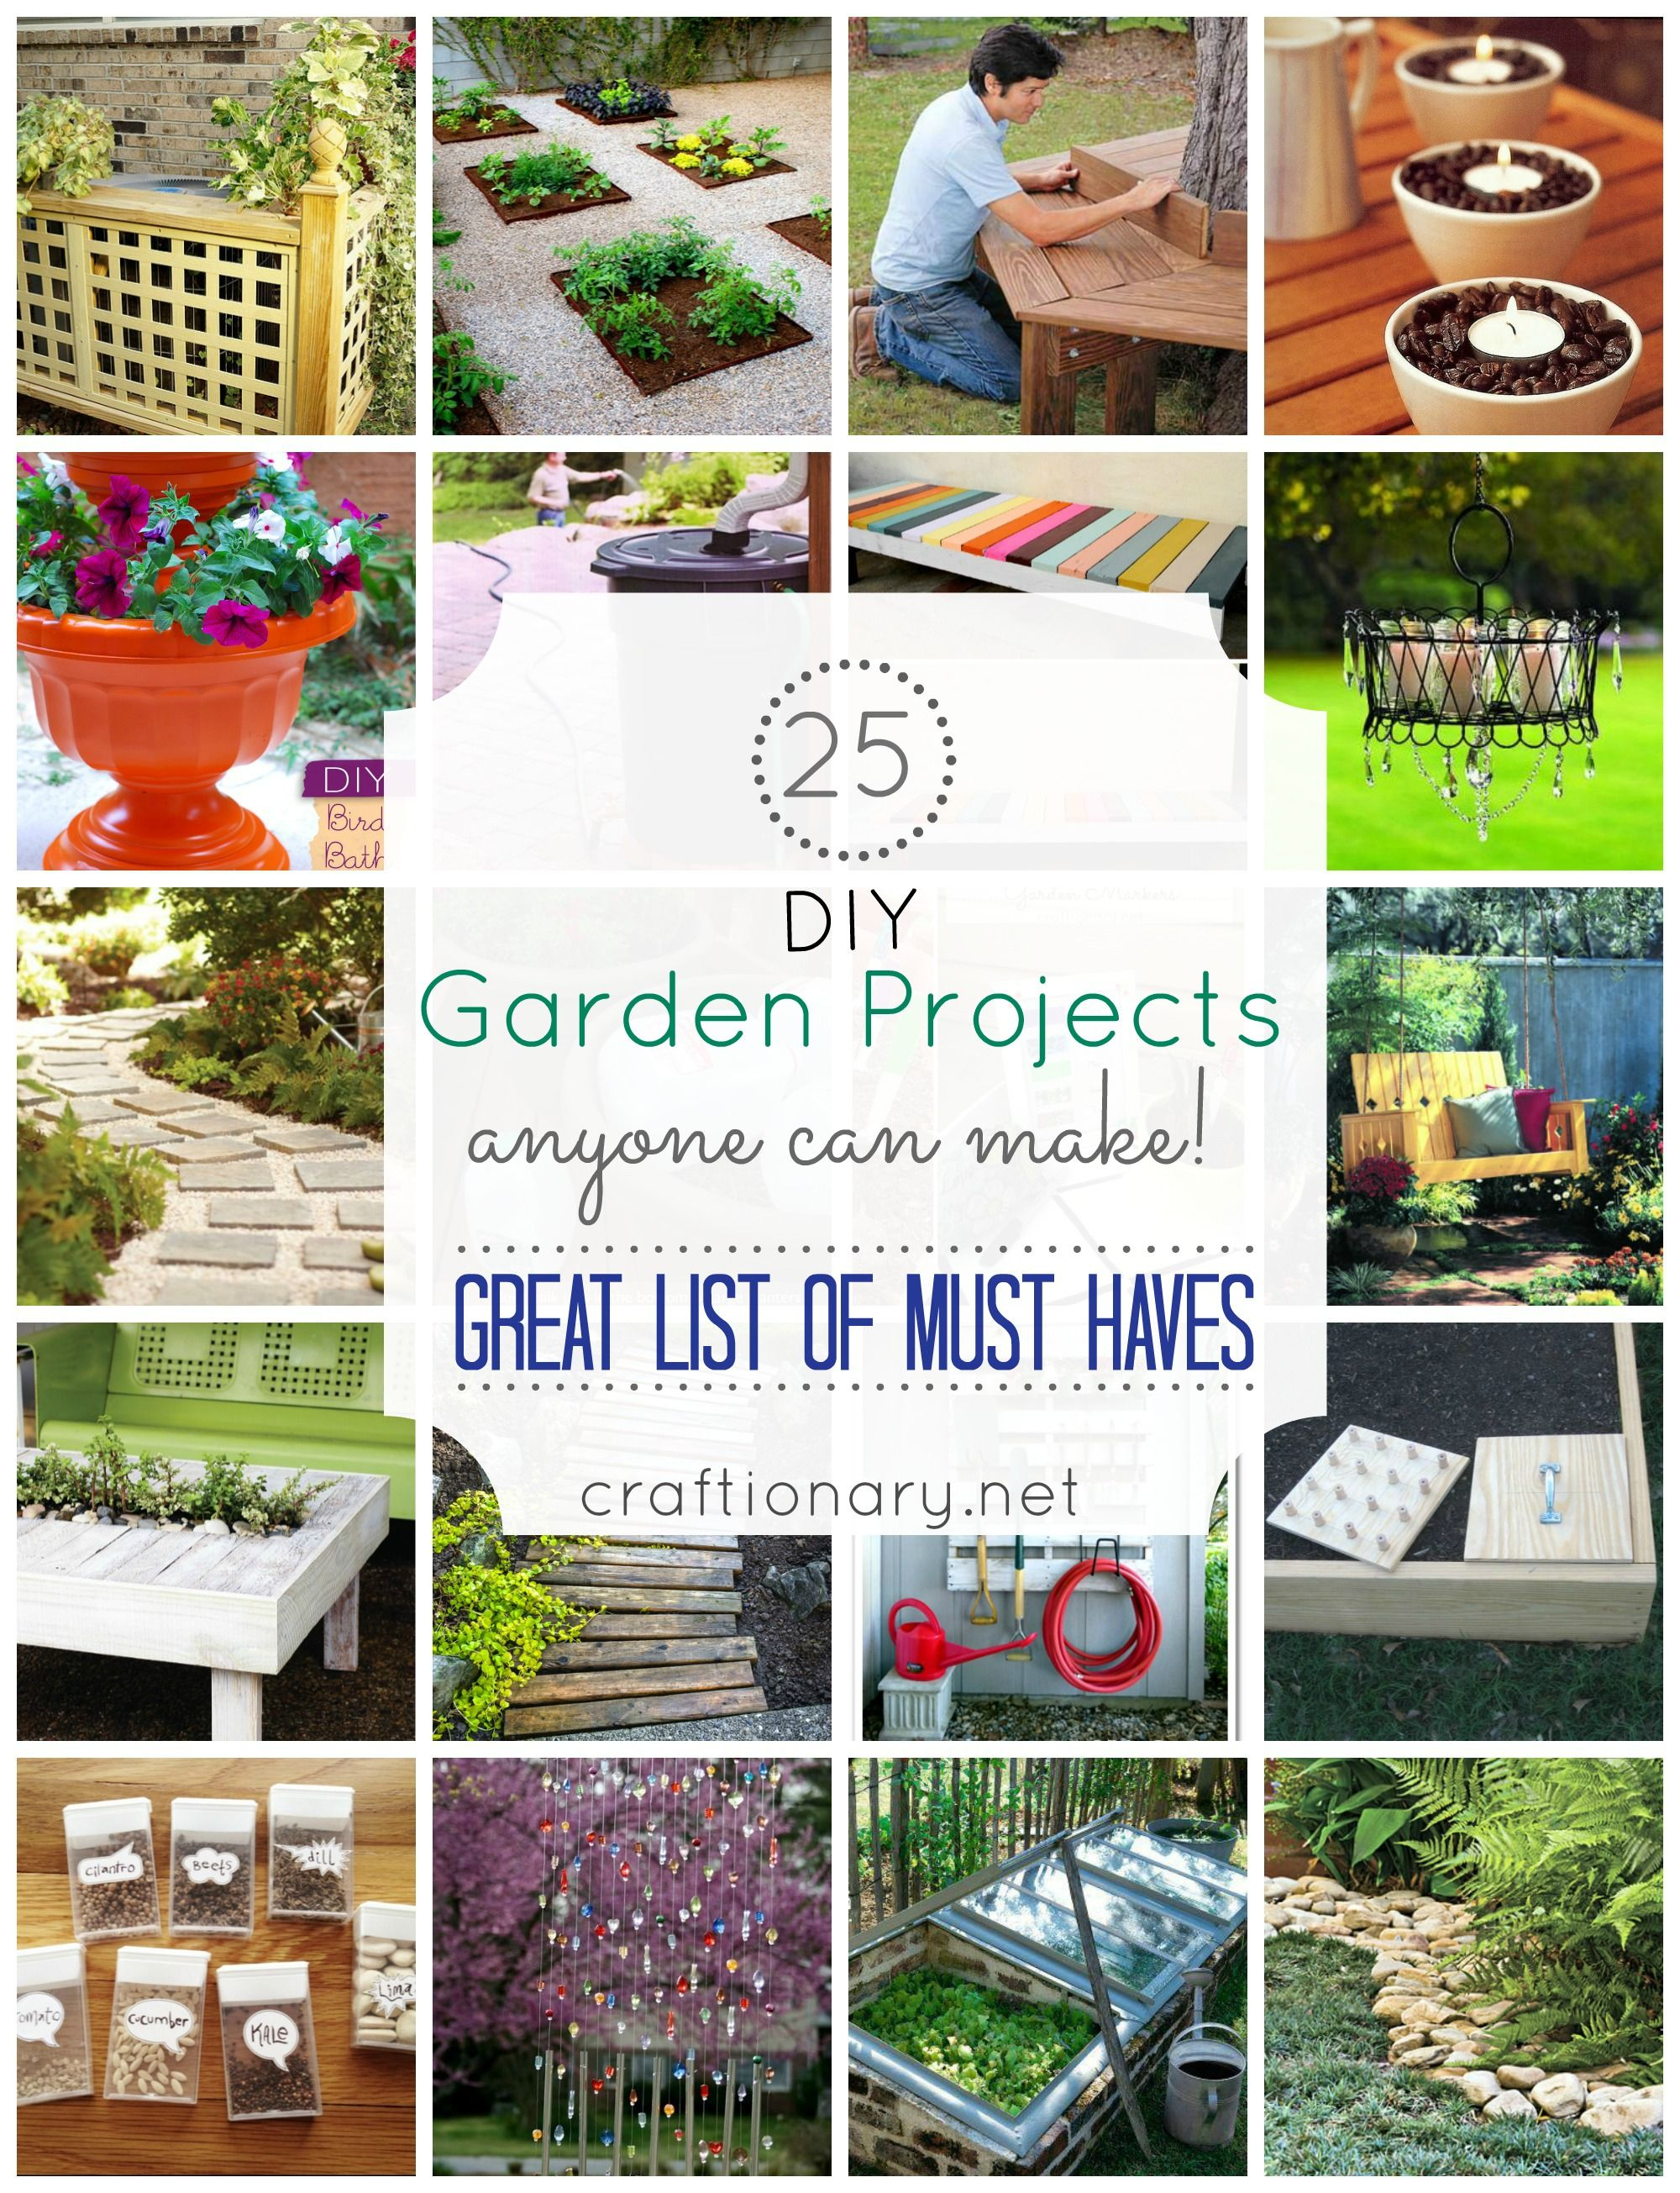 25 DIY Garden Projects Anyone Can Make - Craftionary